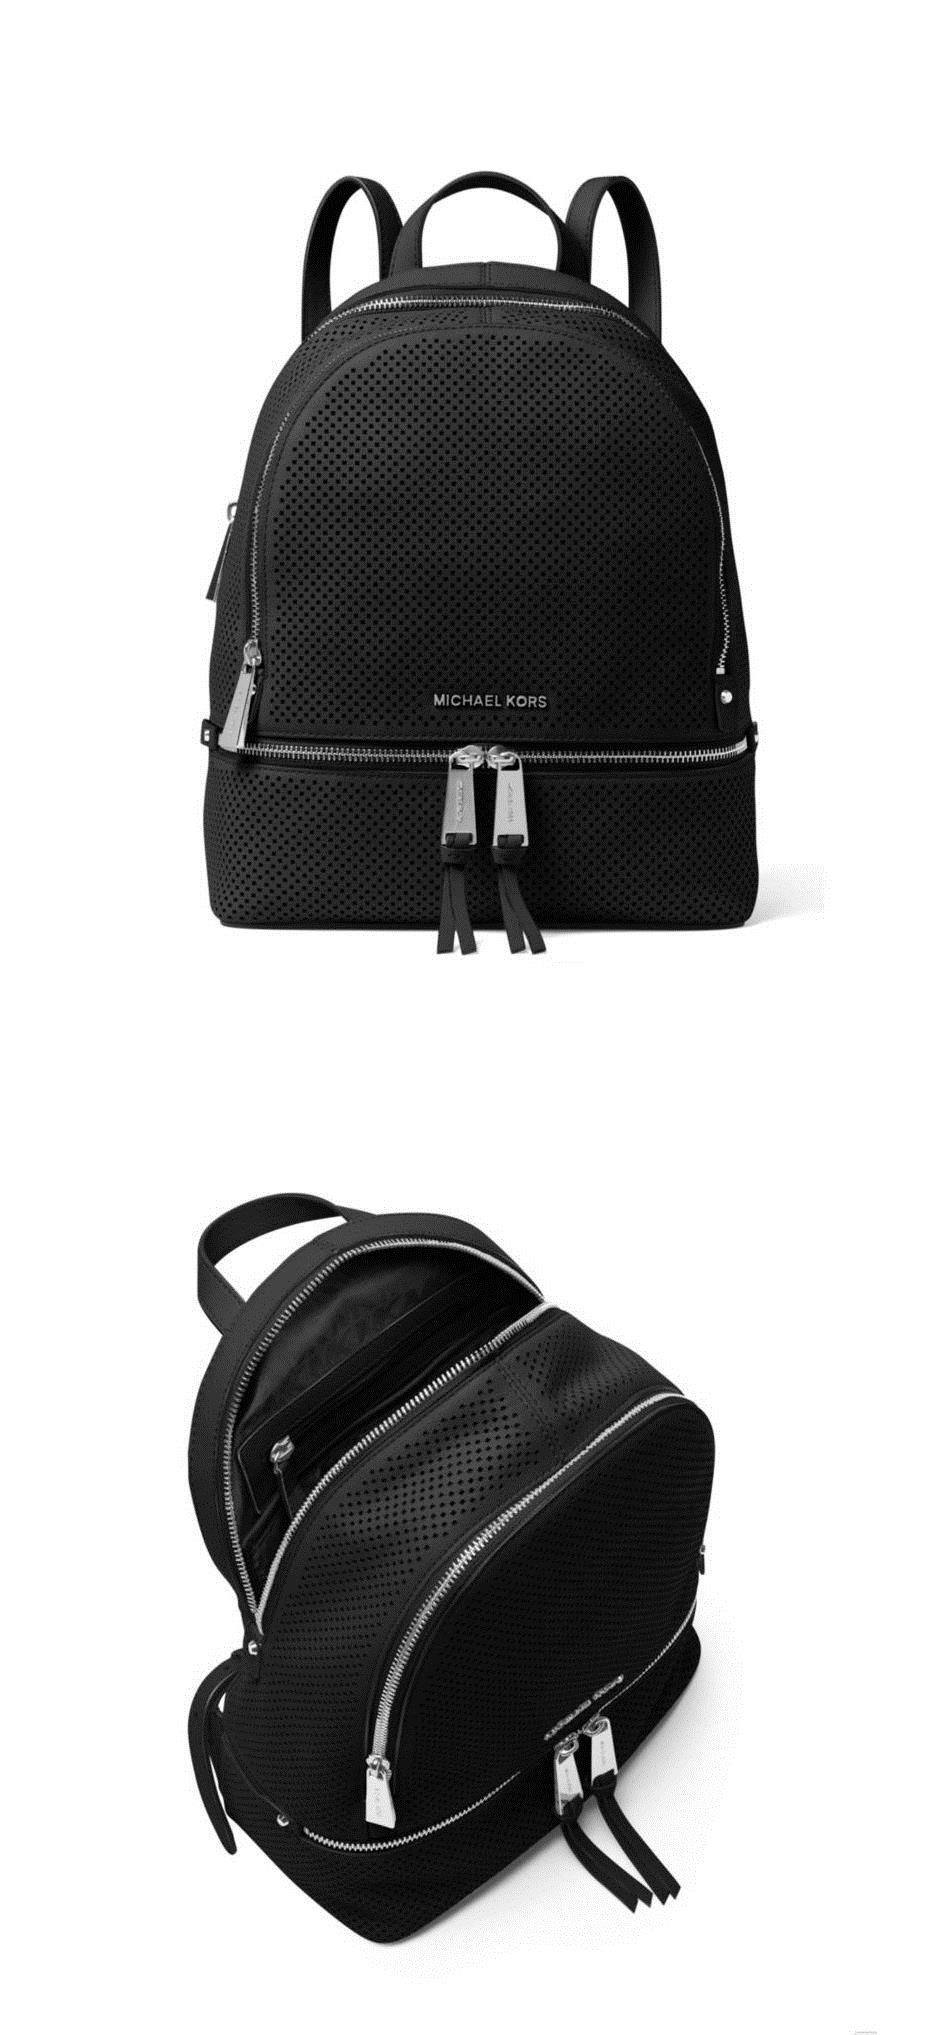 d31c5d18b40f ... reduced backpacks and bookbags 169292 nwt michael kors rhea women  medium backpack perforated leather black silver